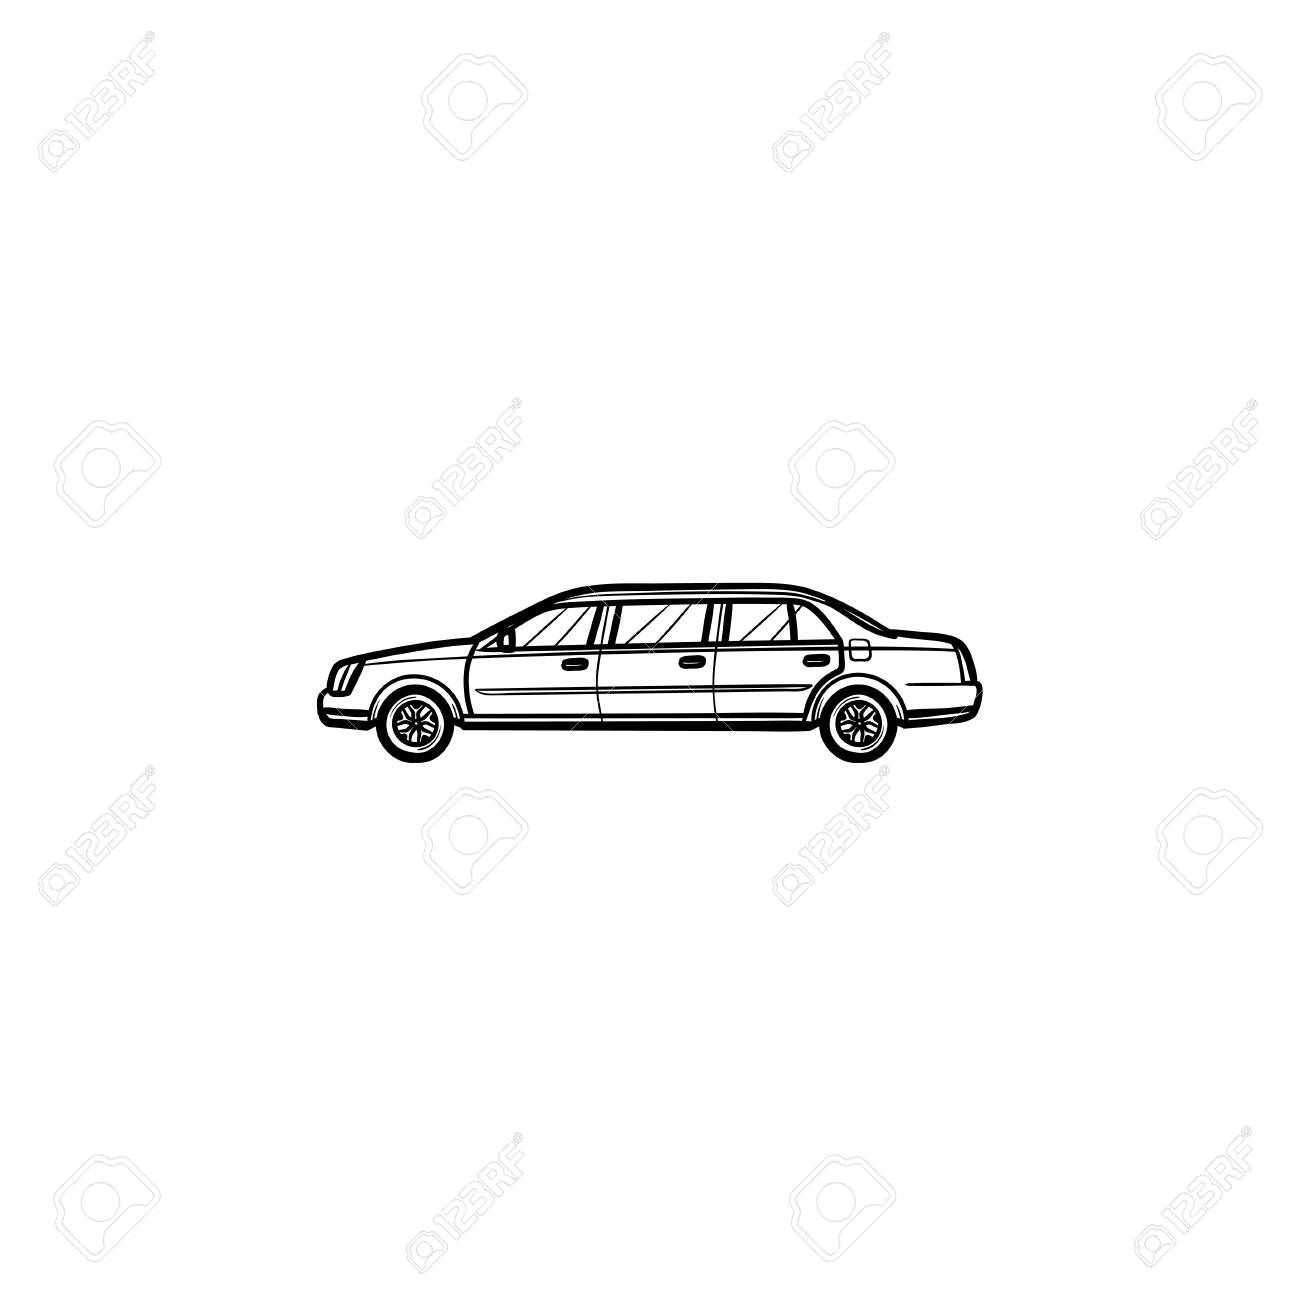 Limousine Hand Drawn Outline Doodle Icon Luxury Car And City Car